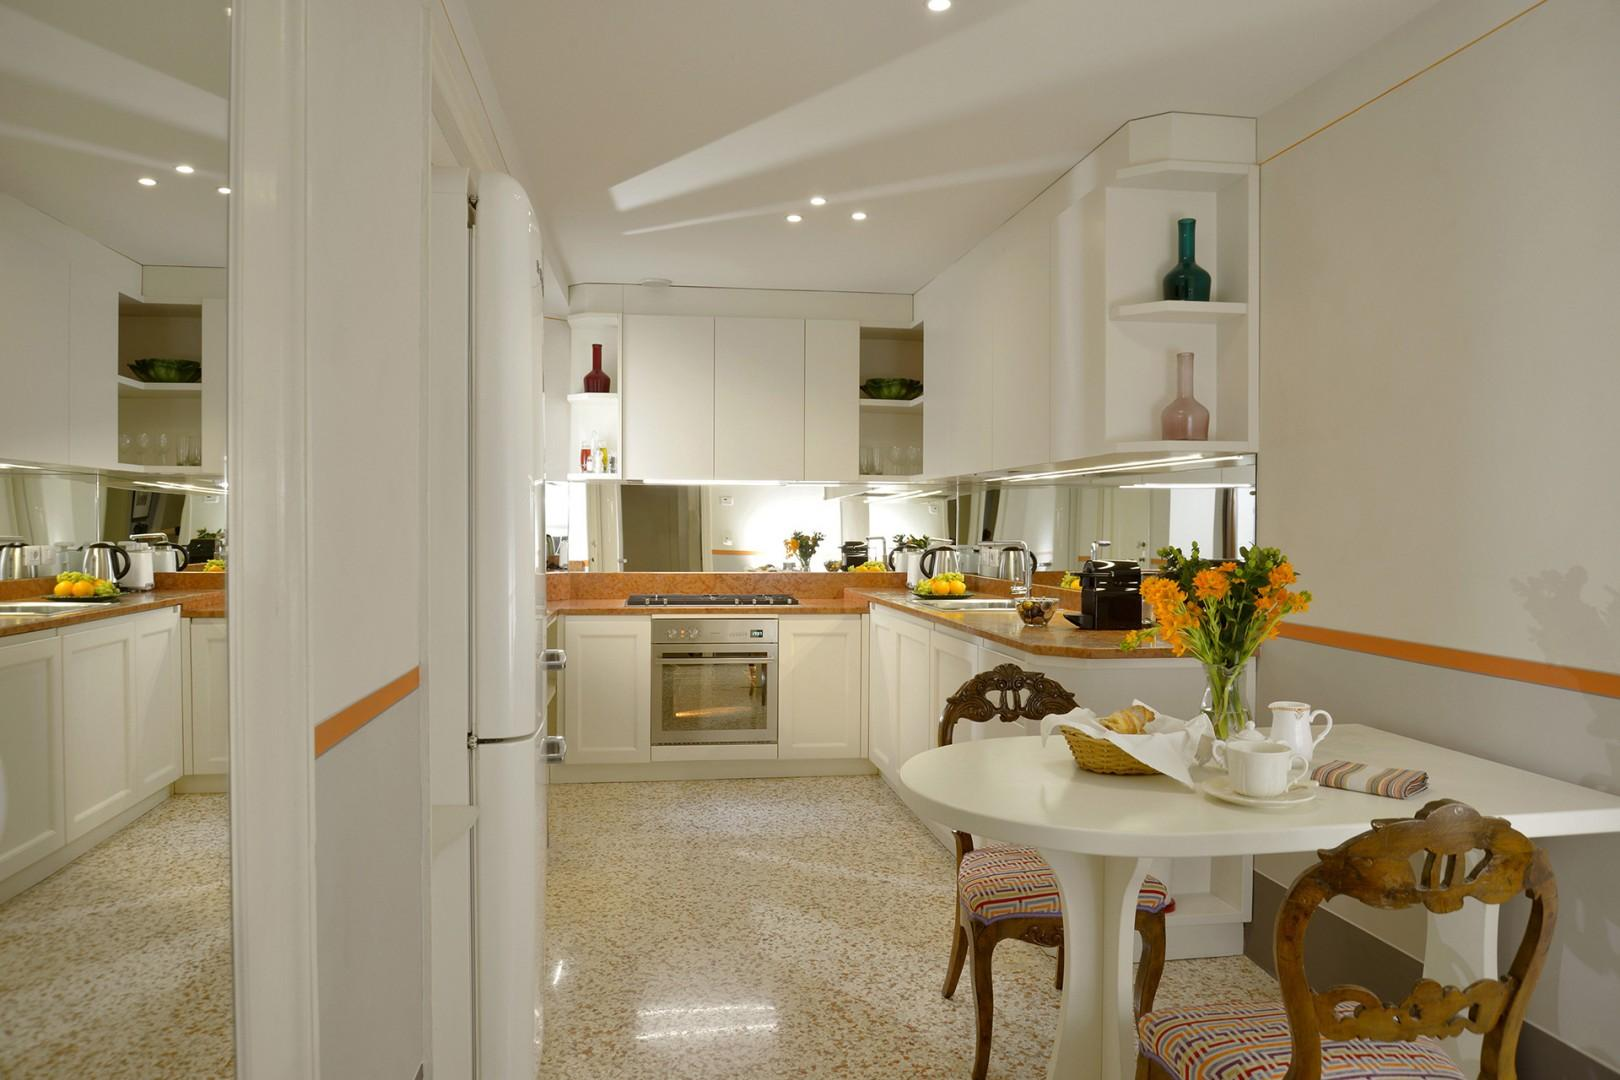 Full kitchen with breakfast table.